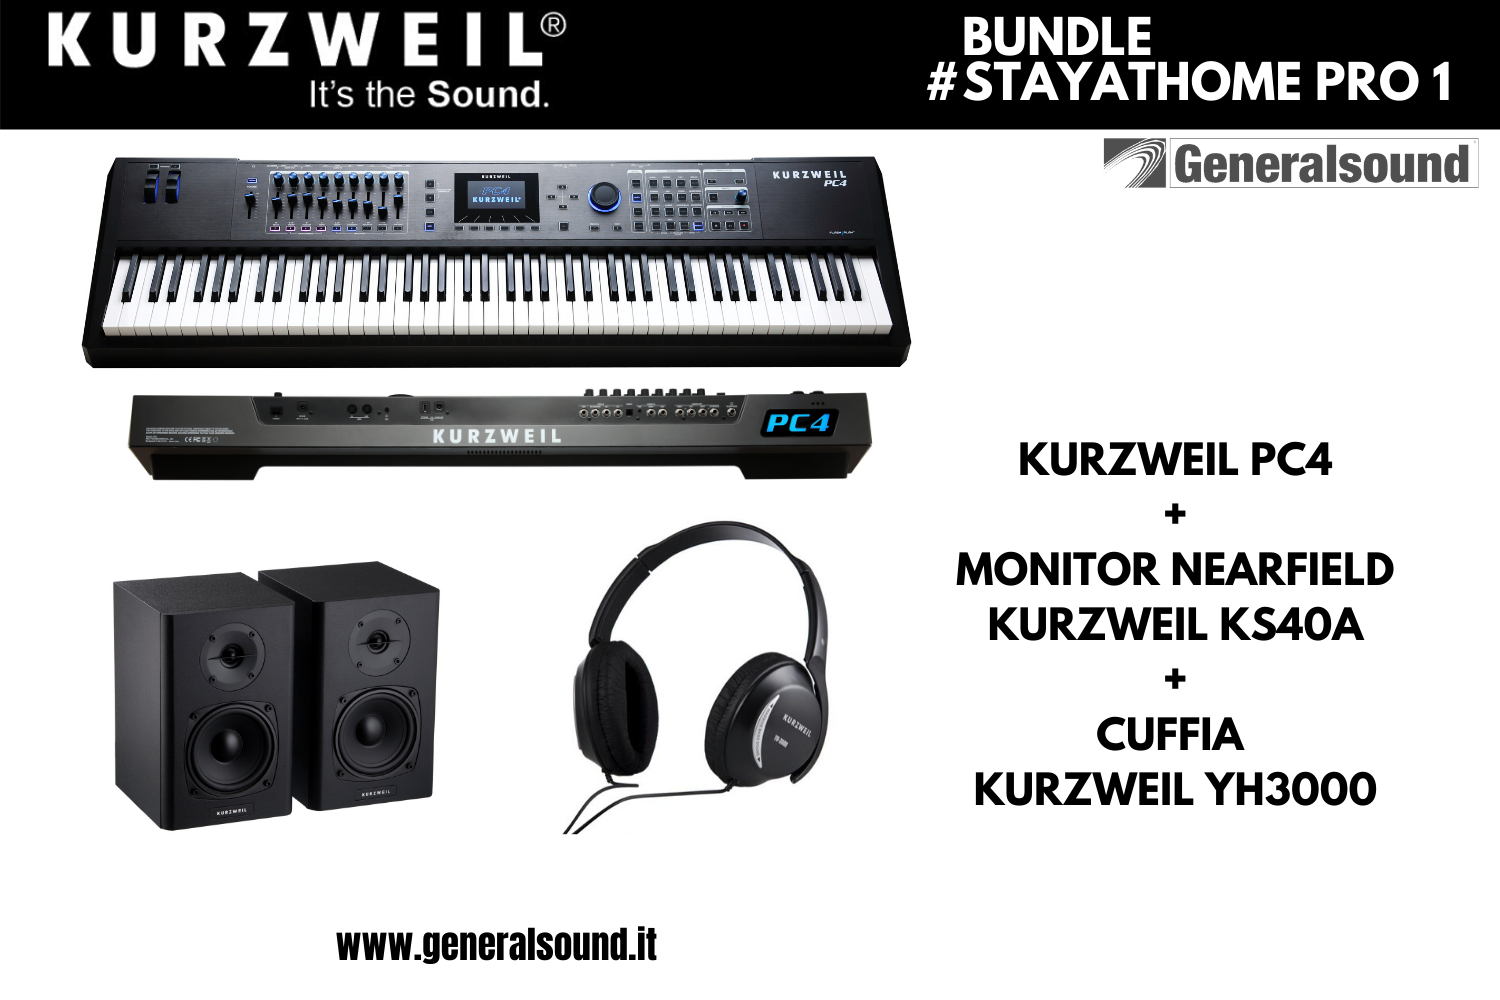 PC4 88 WORKSTATION, CUFFIE, COPPIA MONITOR 4 KURZWEIL